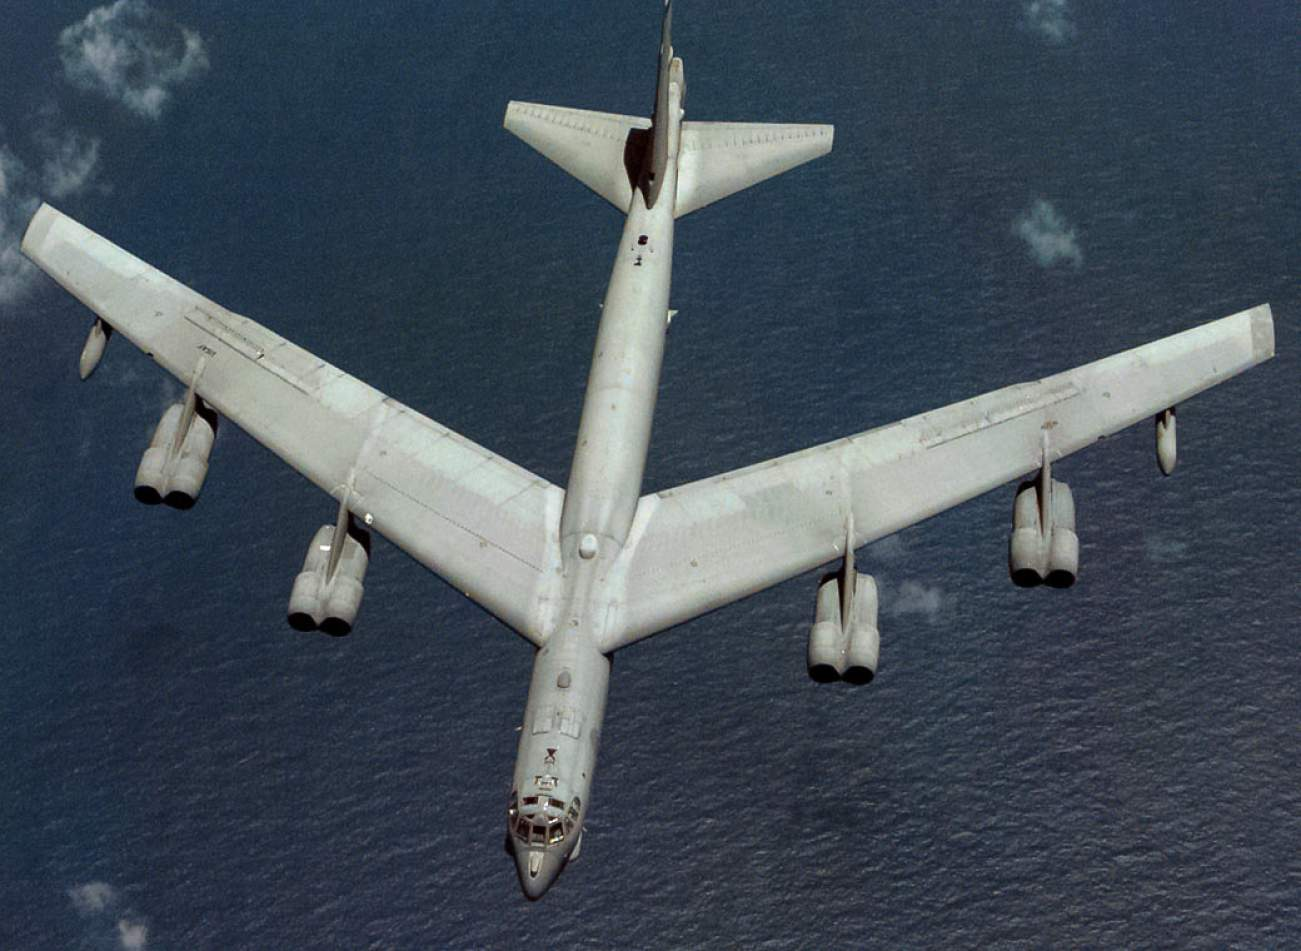 Rather Than Retiring, The Storied B-52 Is Getting Upgraded. Here's Why